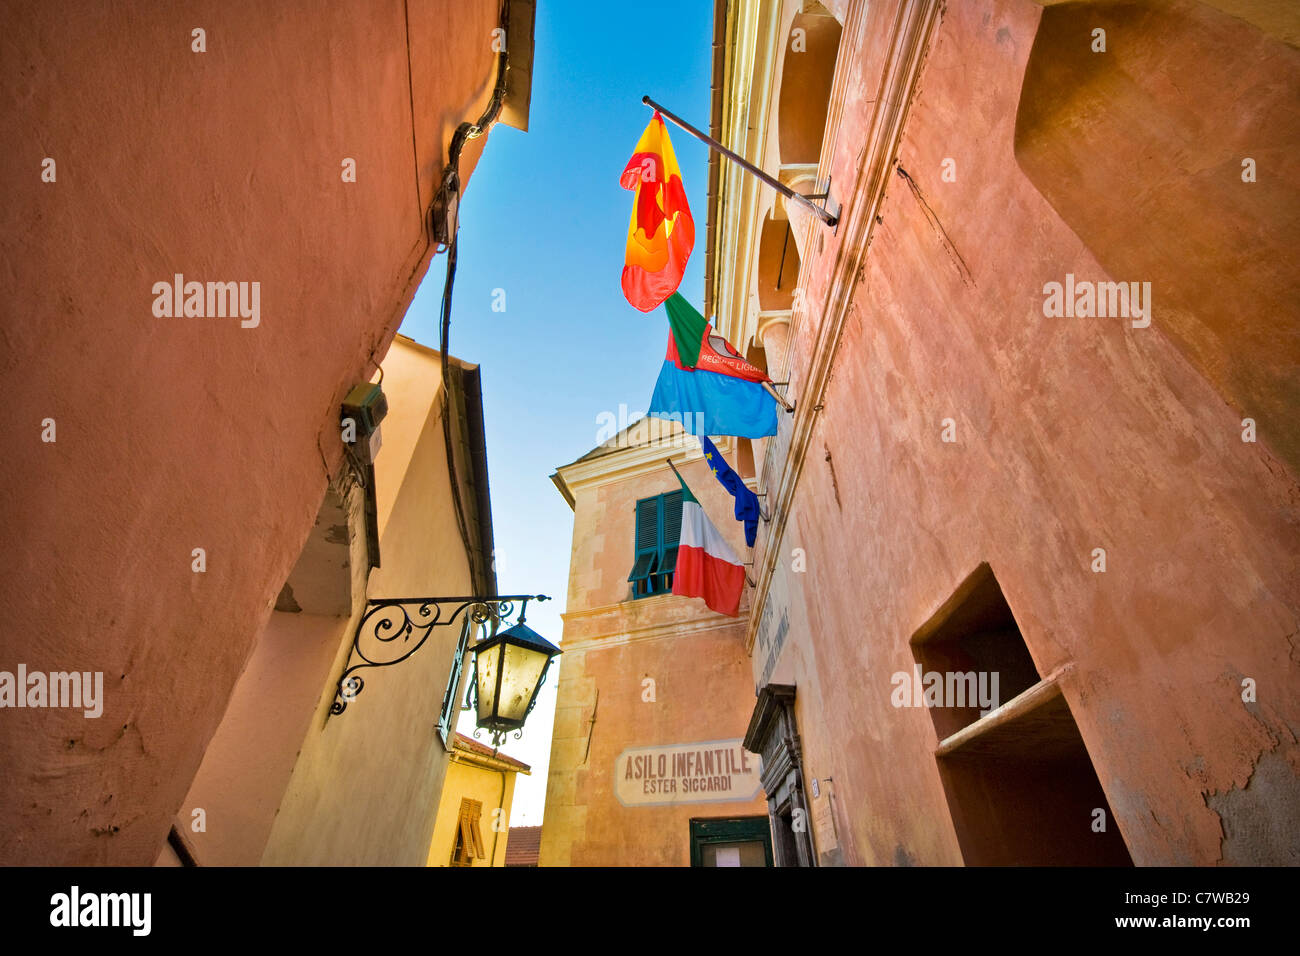 Italy, Liguria, Cervo, buildings, low angle view - Stock Image